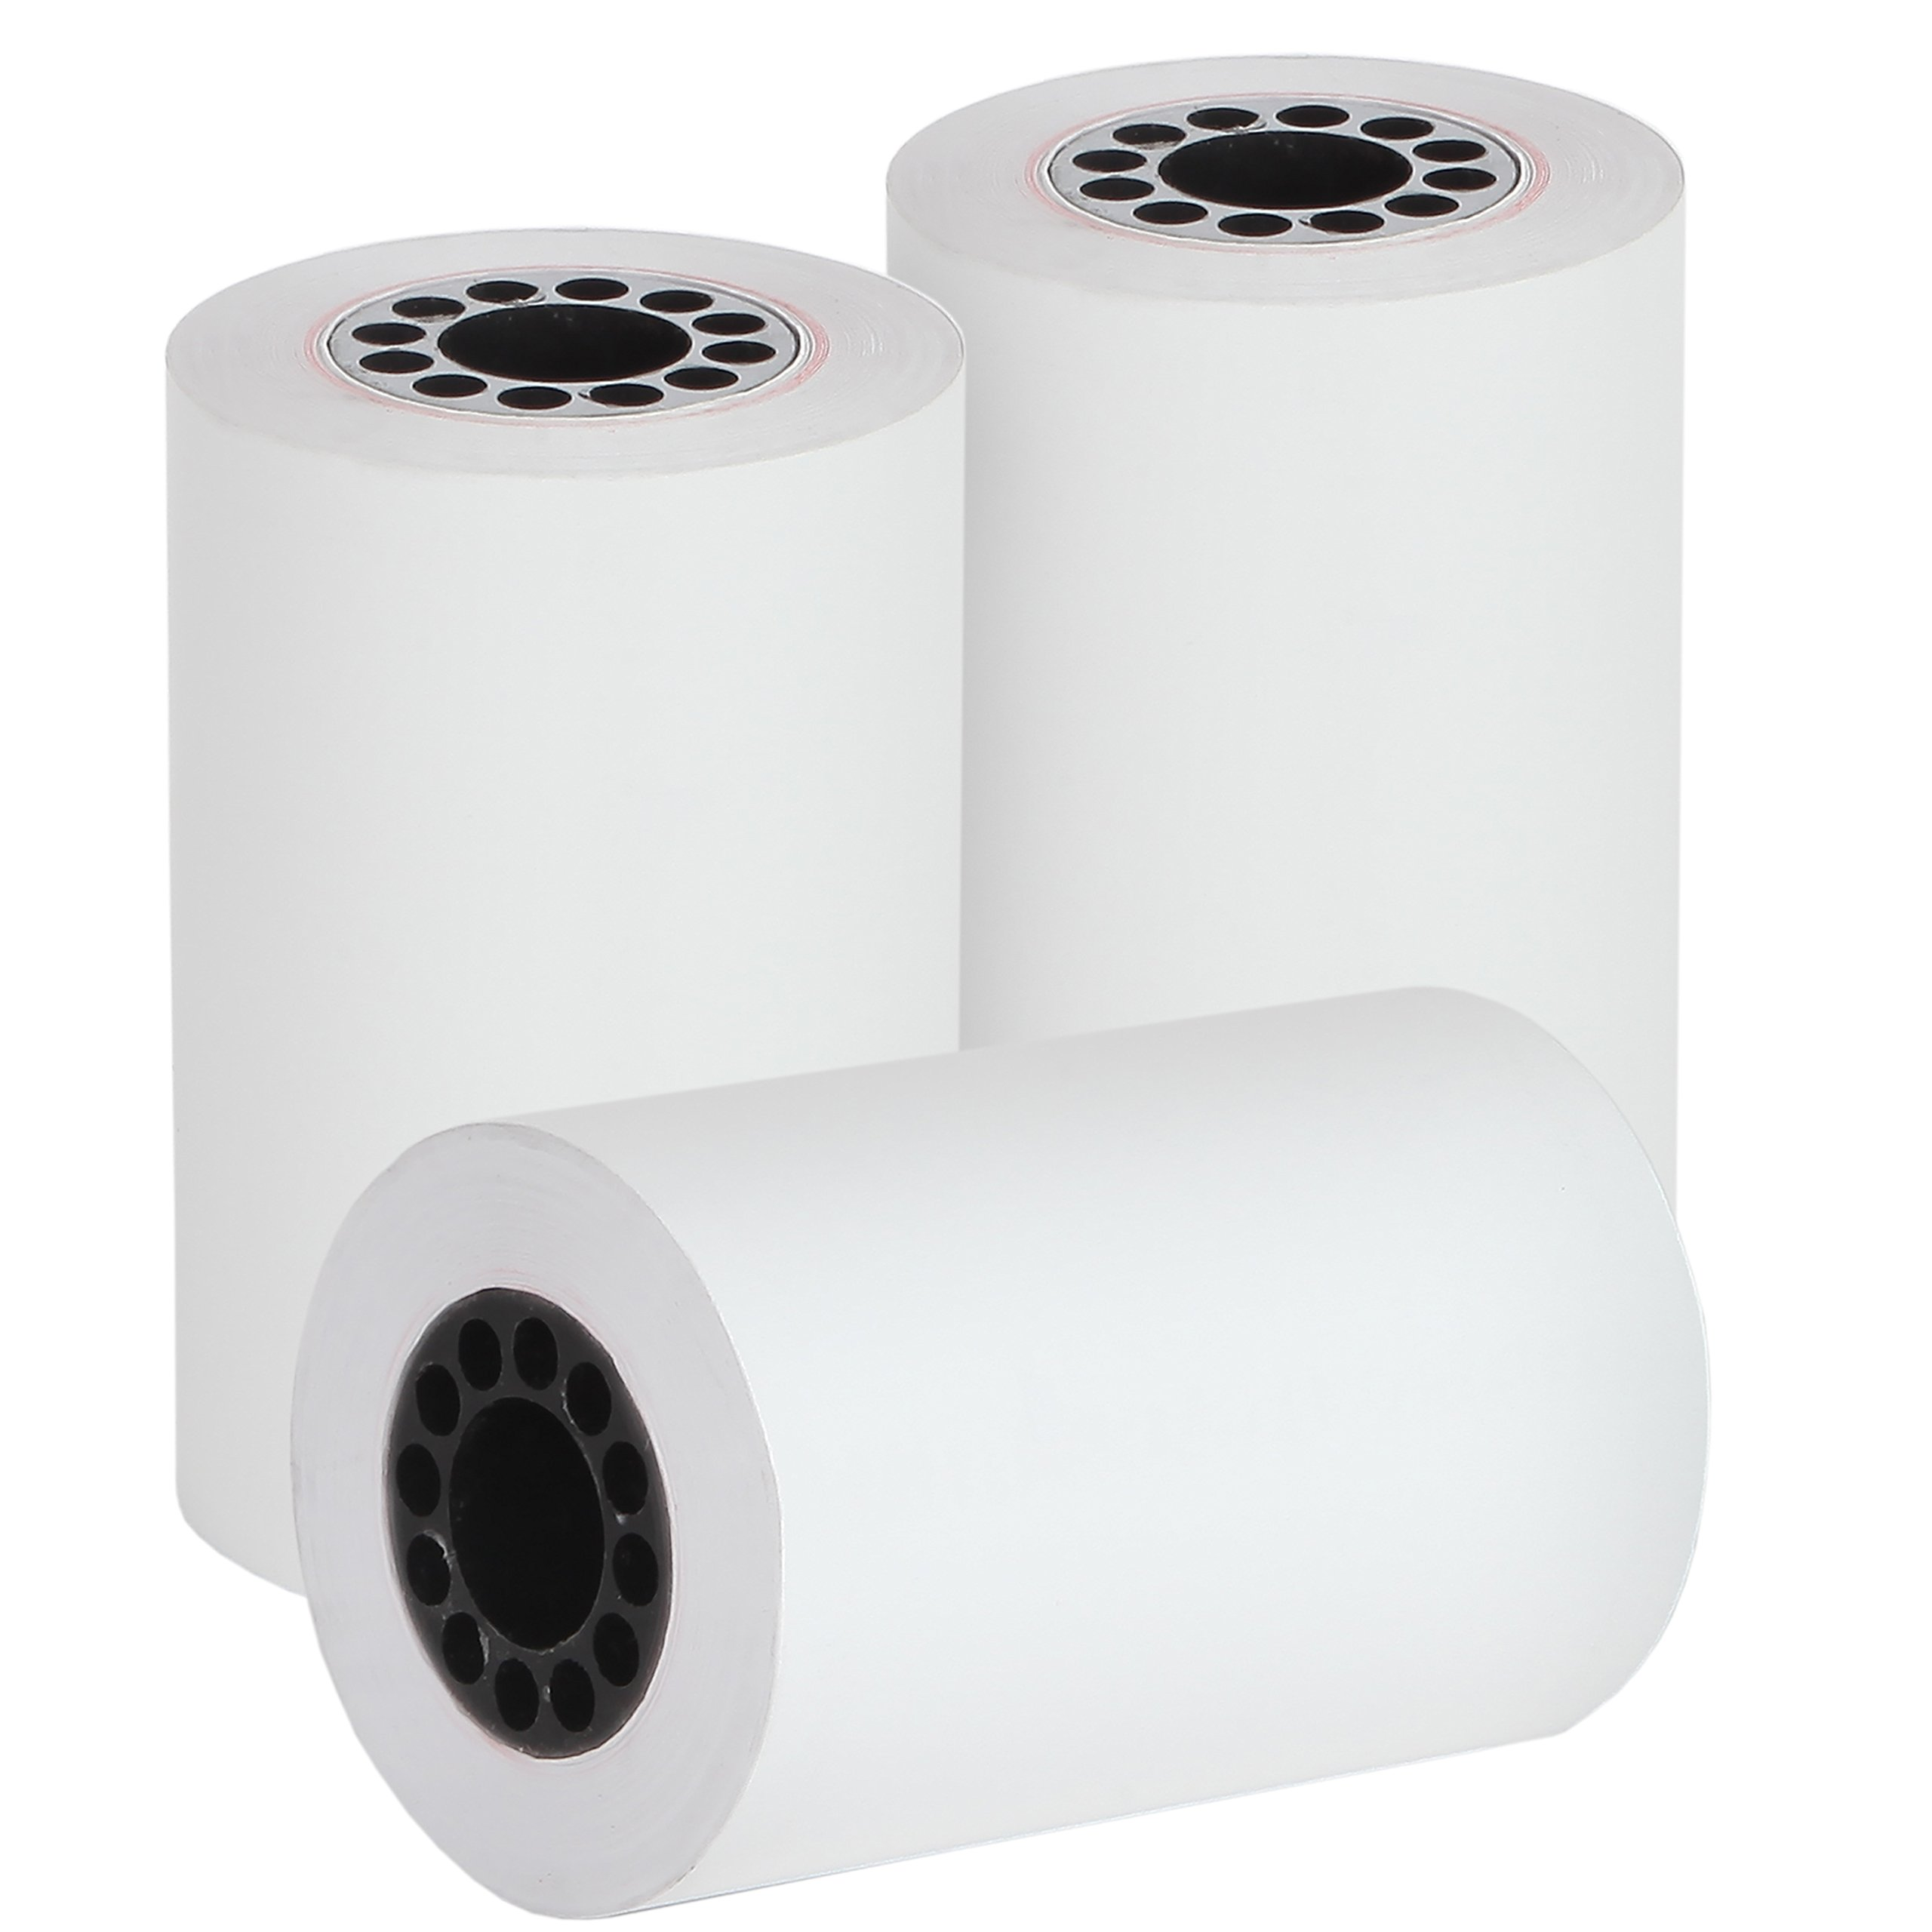 Freccia Rossa Market, (50 rolls) 2 1/4'' X 50' Thermal Receipt Printer Paper for Verifone VX520, First Data FD400, Nurit 8000